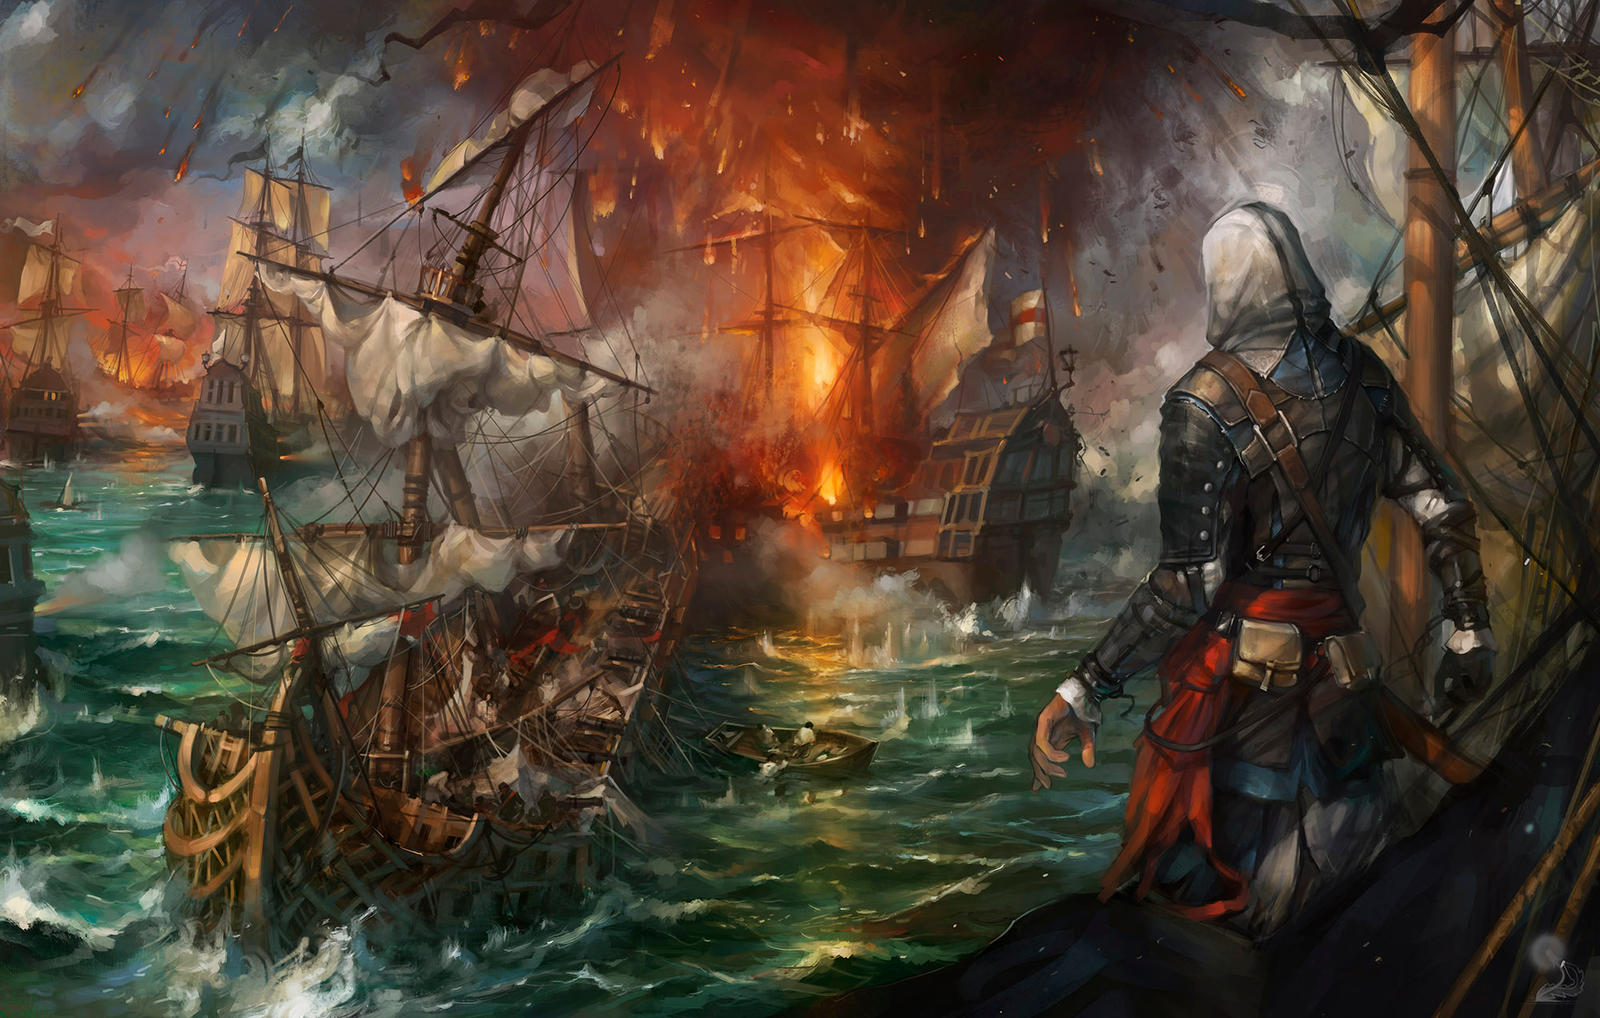 Assassins Creed Iv Black Flag Fanart By Haryarti On Deviantart